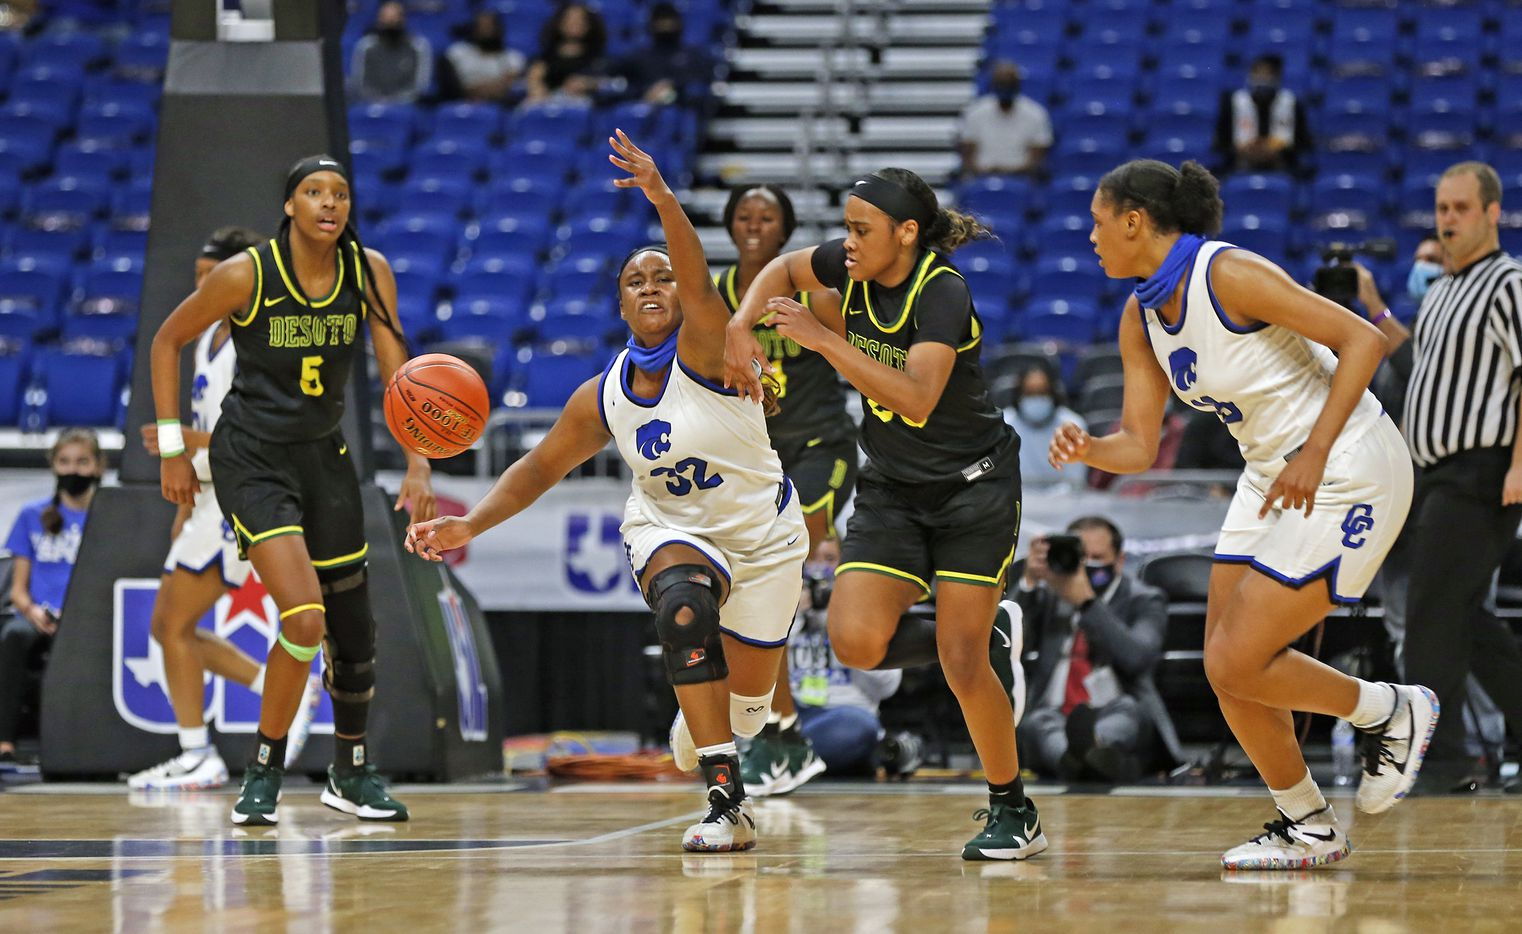 DeSoto Kendall Brown #23 steals the ball from Cypress Creek Taylor Jackson #32. DeSoto vs. Cypress Creek girls basketball Class 6A state championship game on Thursday, March 12, 2021 at the Alamodome.